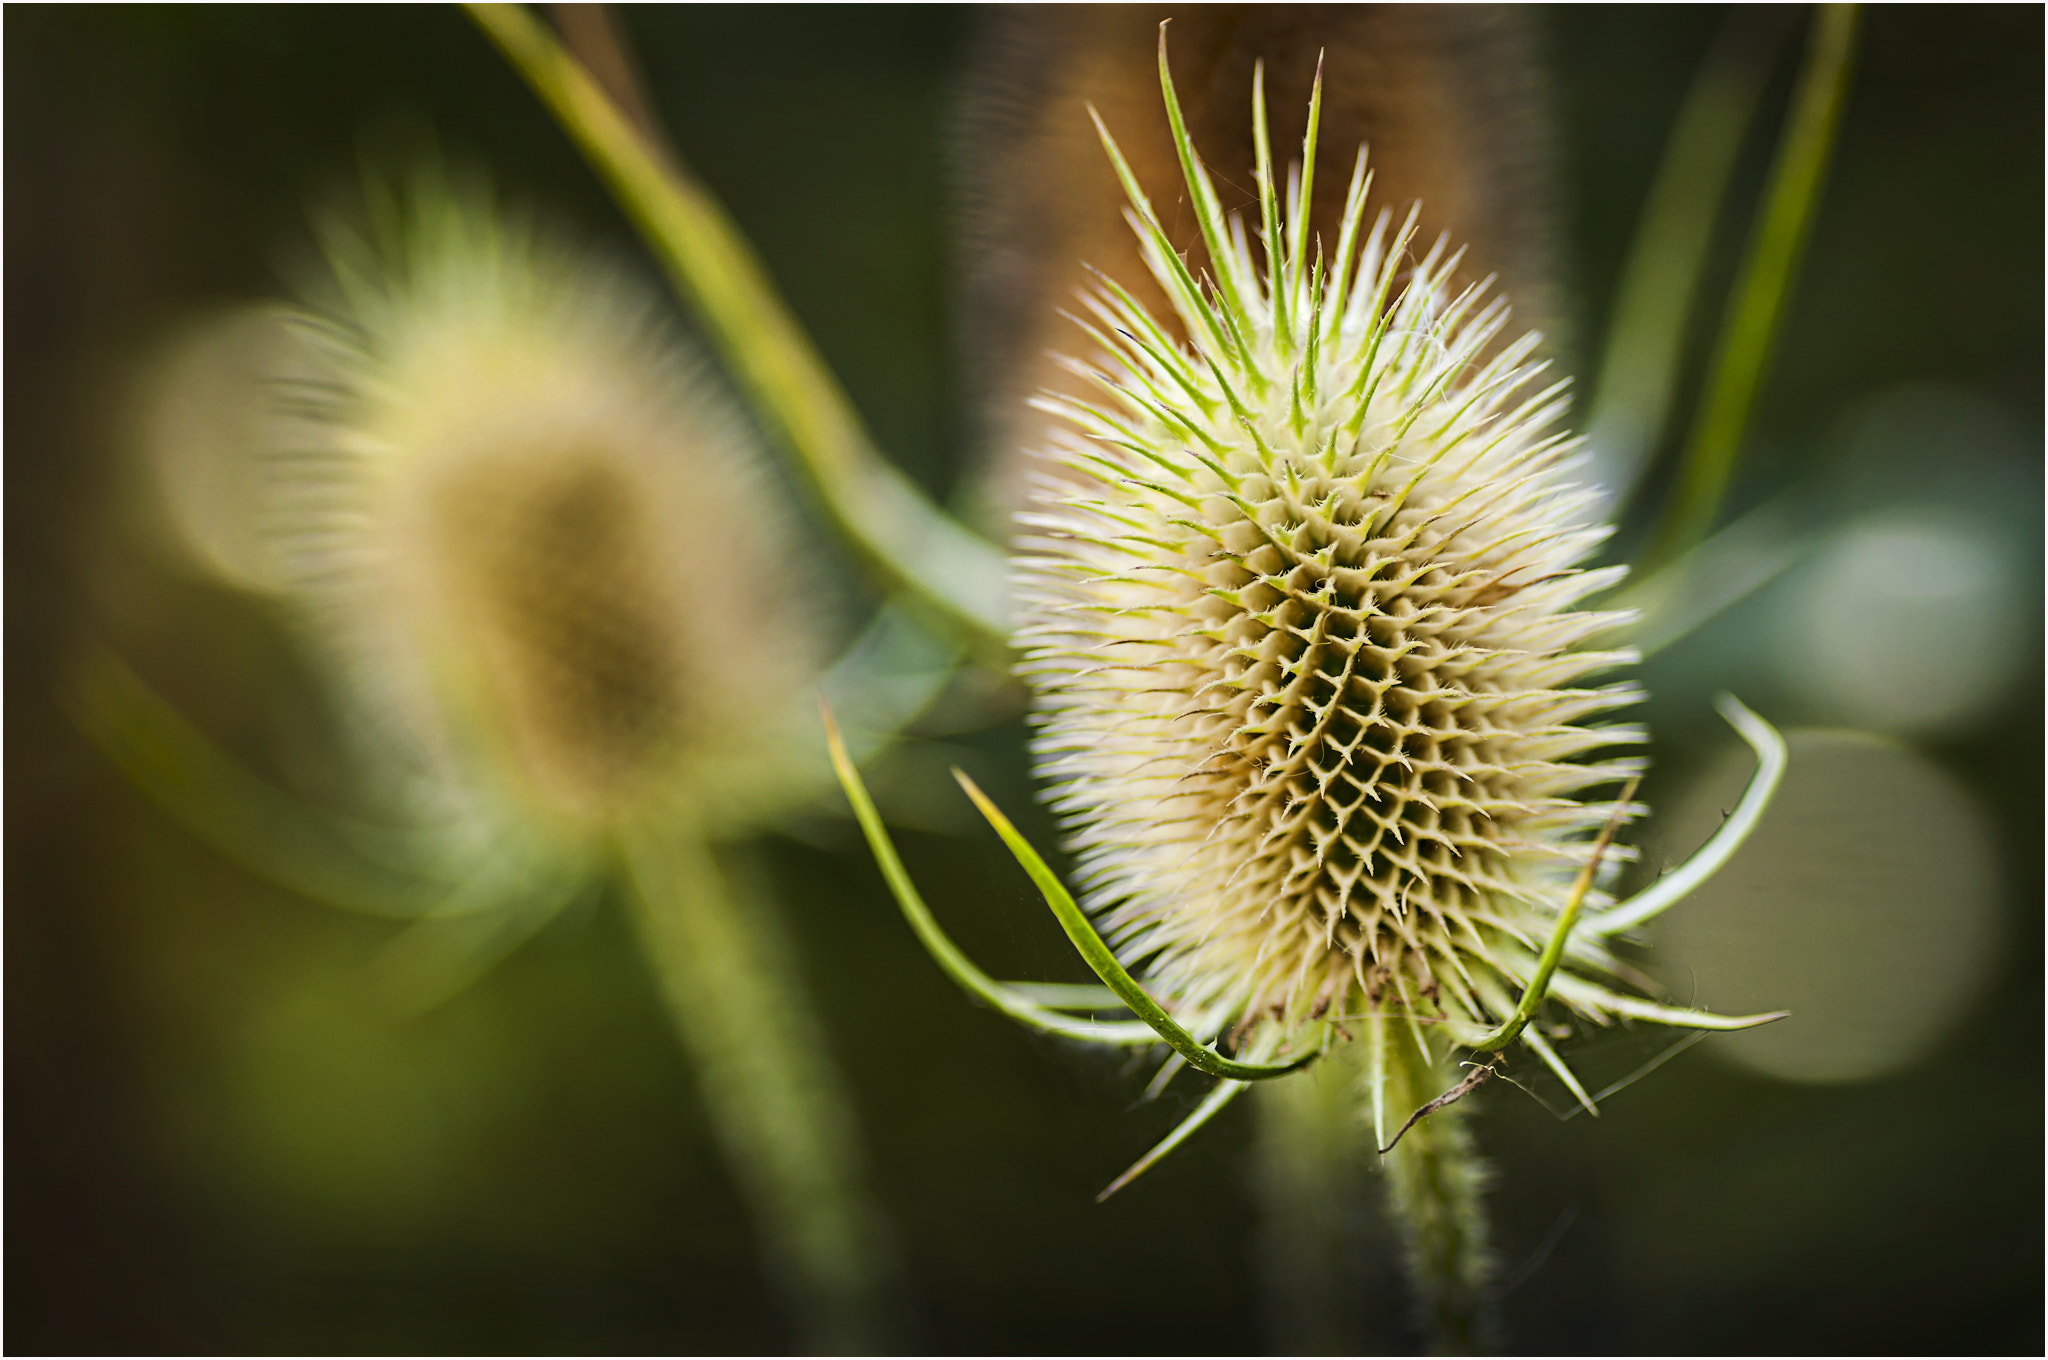 Photograph Thistle by Mark Shoesmith on 500px